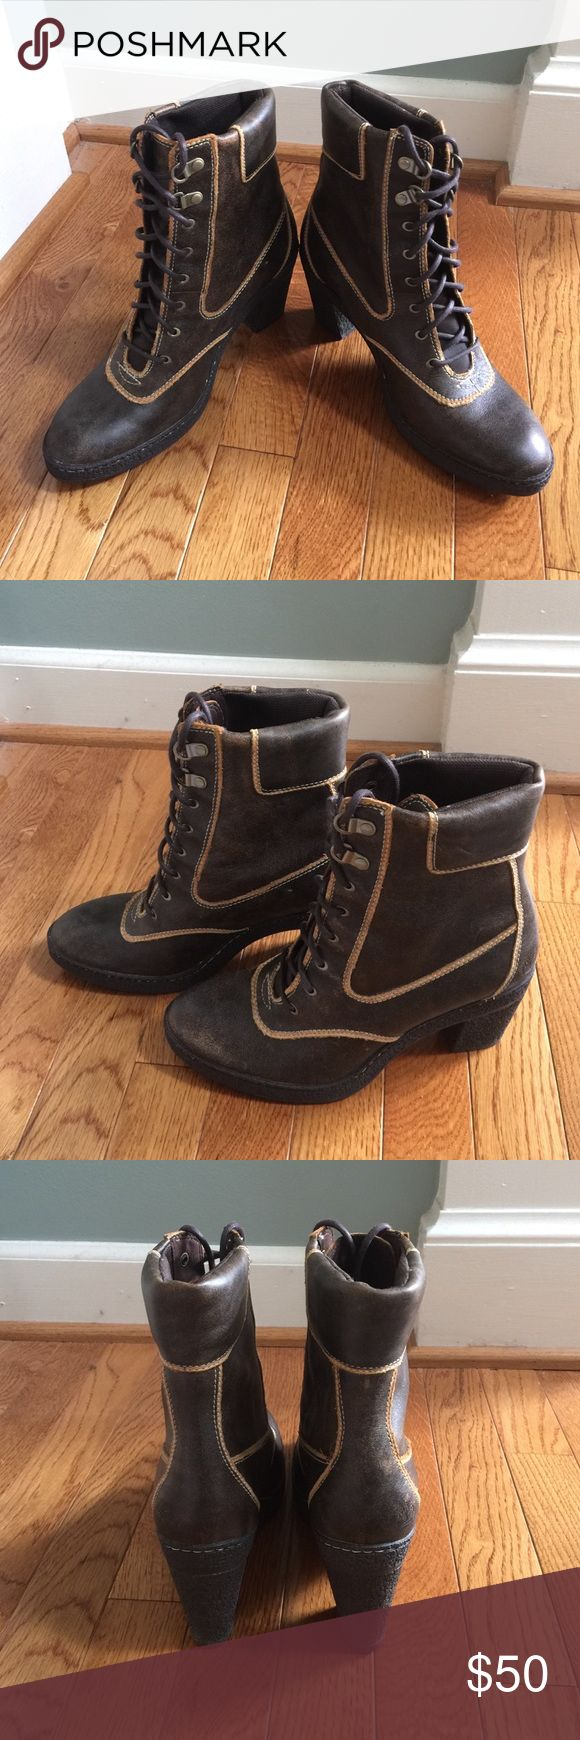 """💞 NWOT Ladies Timberland Boots 💞 NWOT Ladies Authentic Timberland Lace Up Closure Boots have genuine leather upper with leather and man-made lining and man-made outsole.  Heel height is 3.25"""".  Brand new, never worn.  Smoke-free, pet-free home. Timberland Shoes Heeled Boots"""